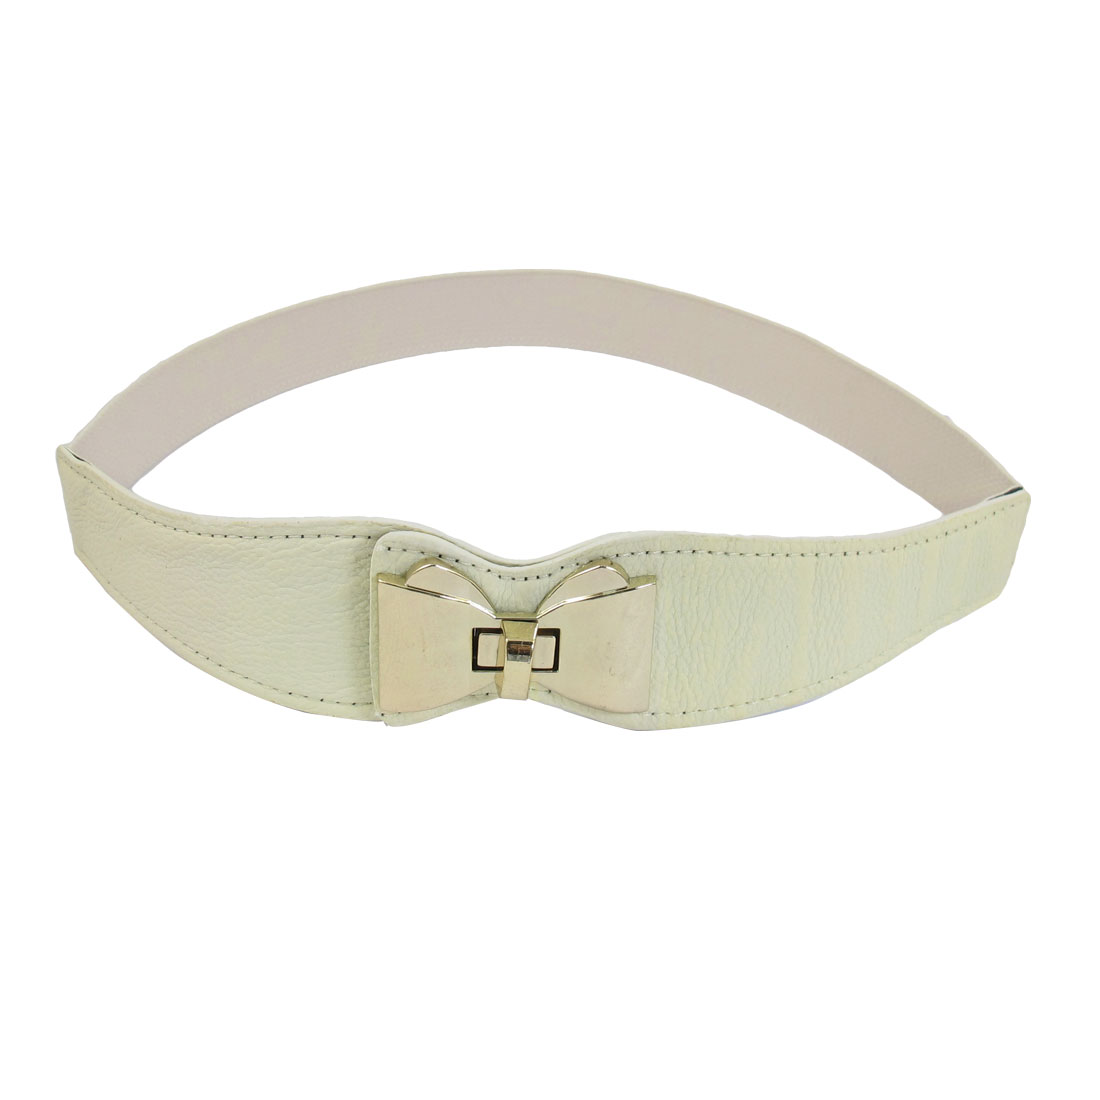 Turn Lock Metal Buckle Bowknot Decor Elastic Beige Waistband Belt for Lady